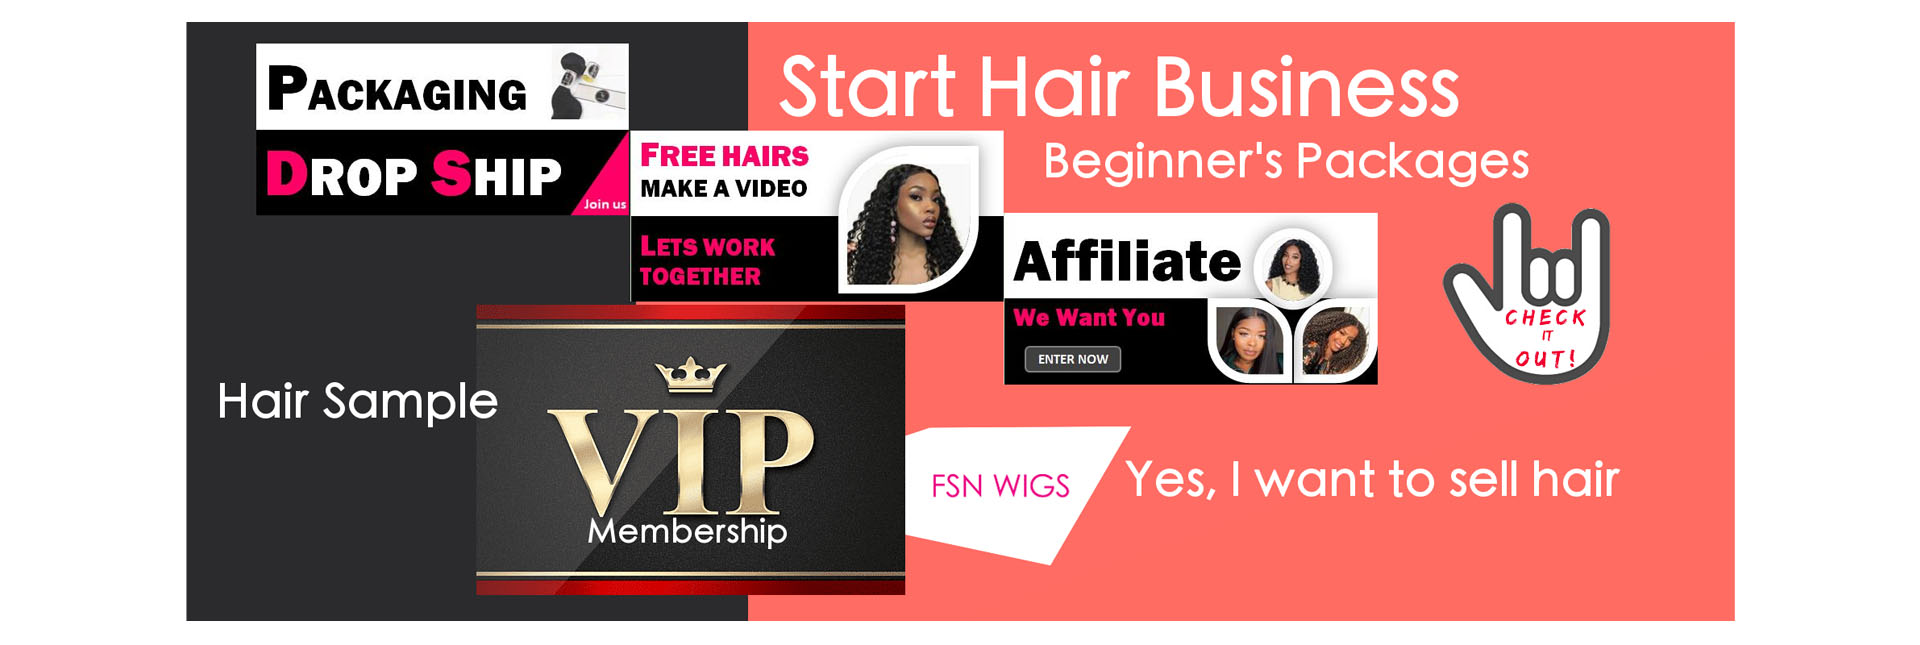 Start Hair Business